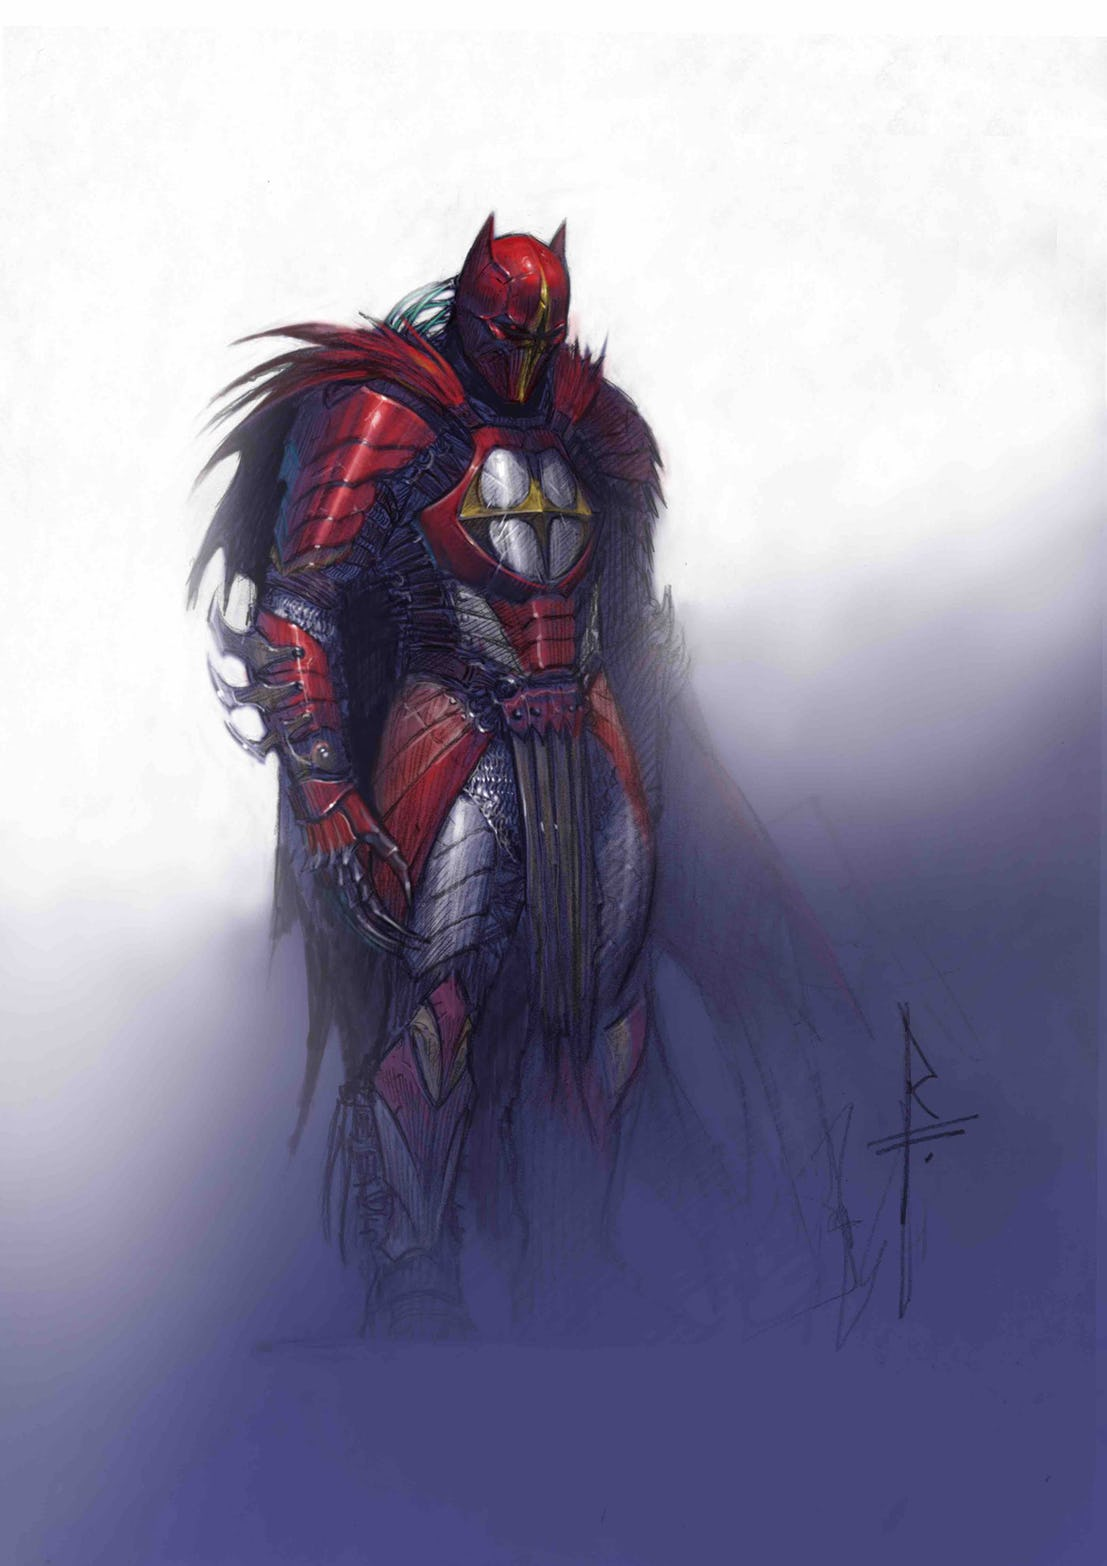 Azrael-concept-frontal-full-figure-color-study-Federici.jpg